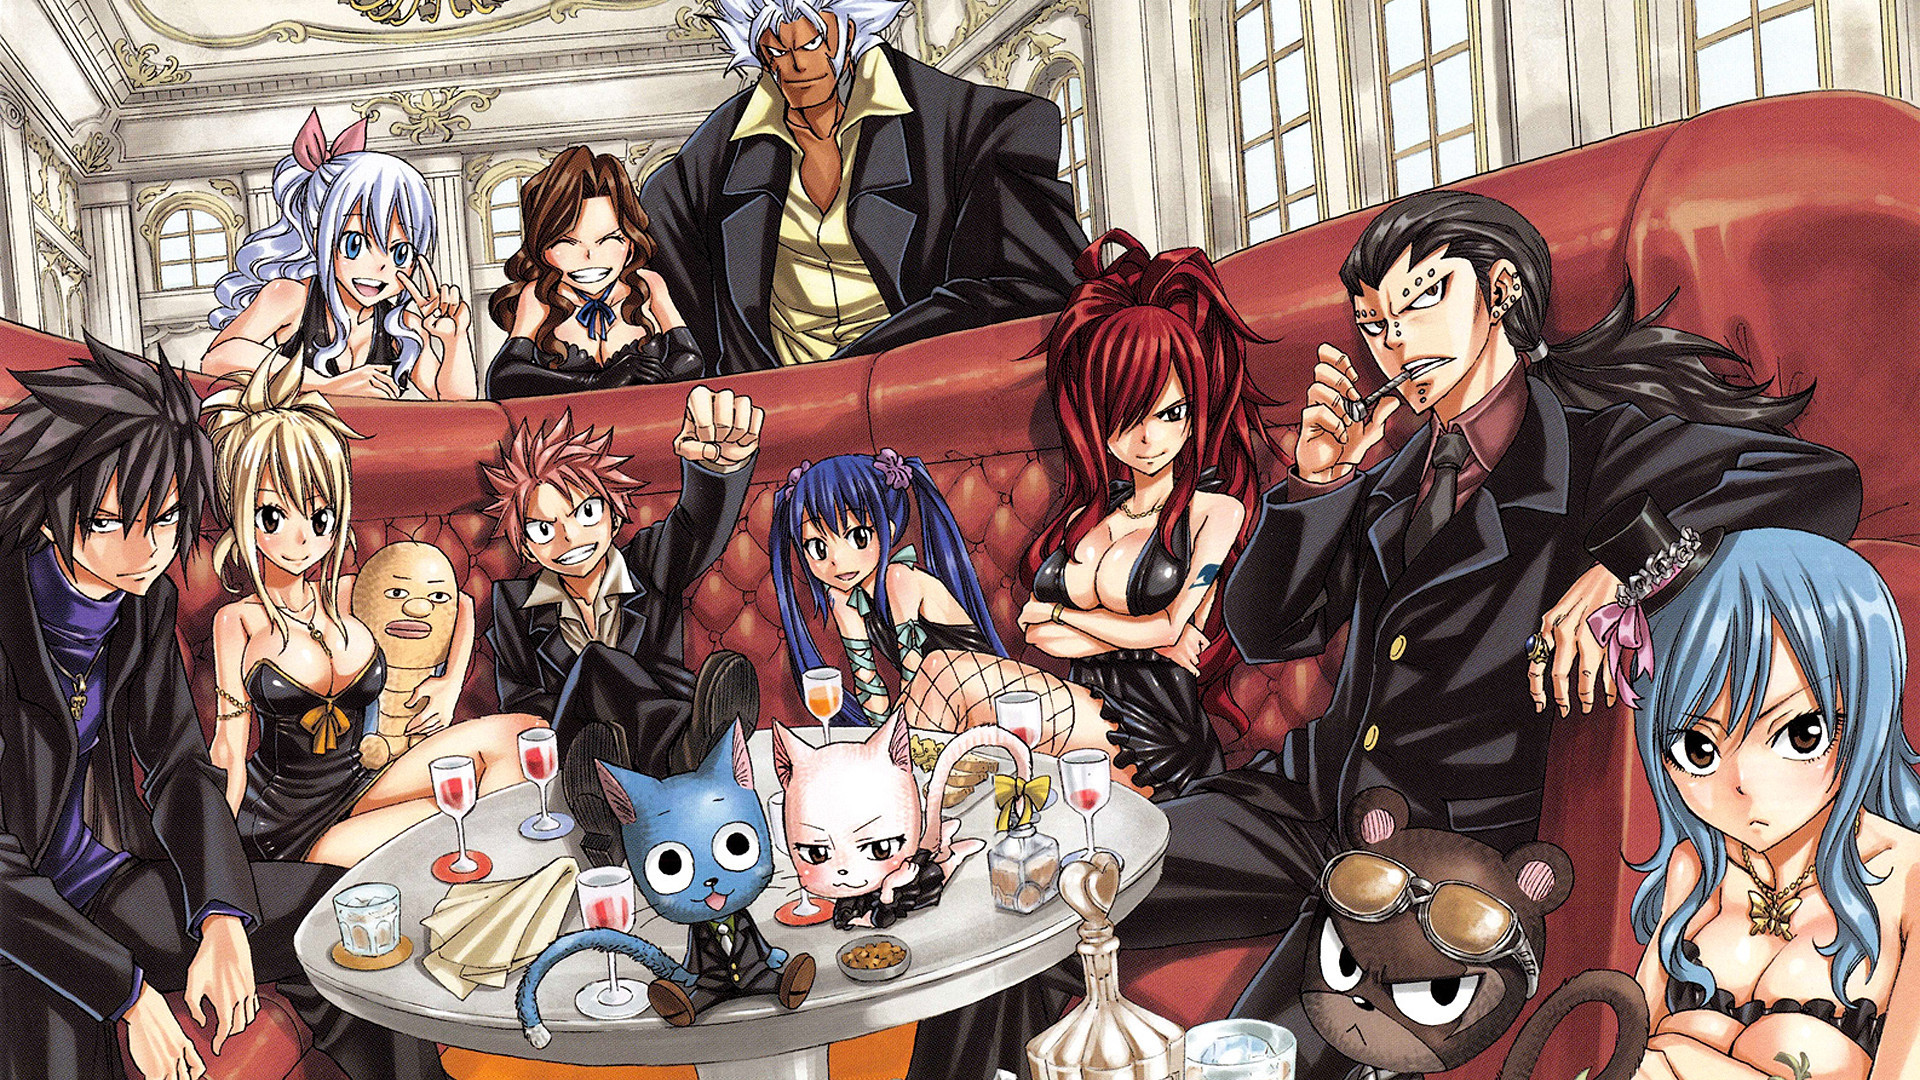 1920x1080  Anime - Fairy Tail Gray Fullbuster Panther Lily (Fairy Tail)  Gajeel Redfox Cana